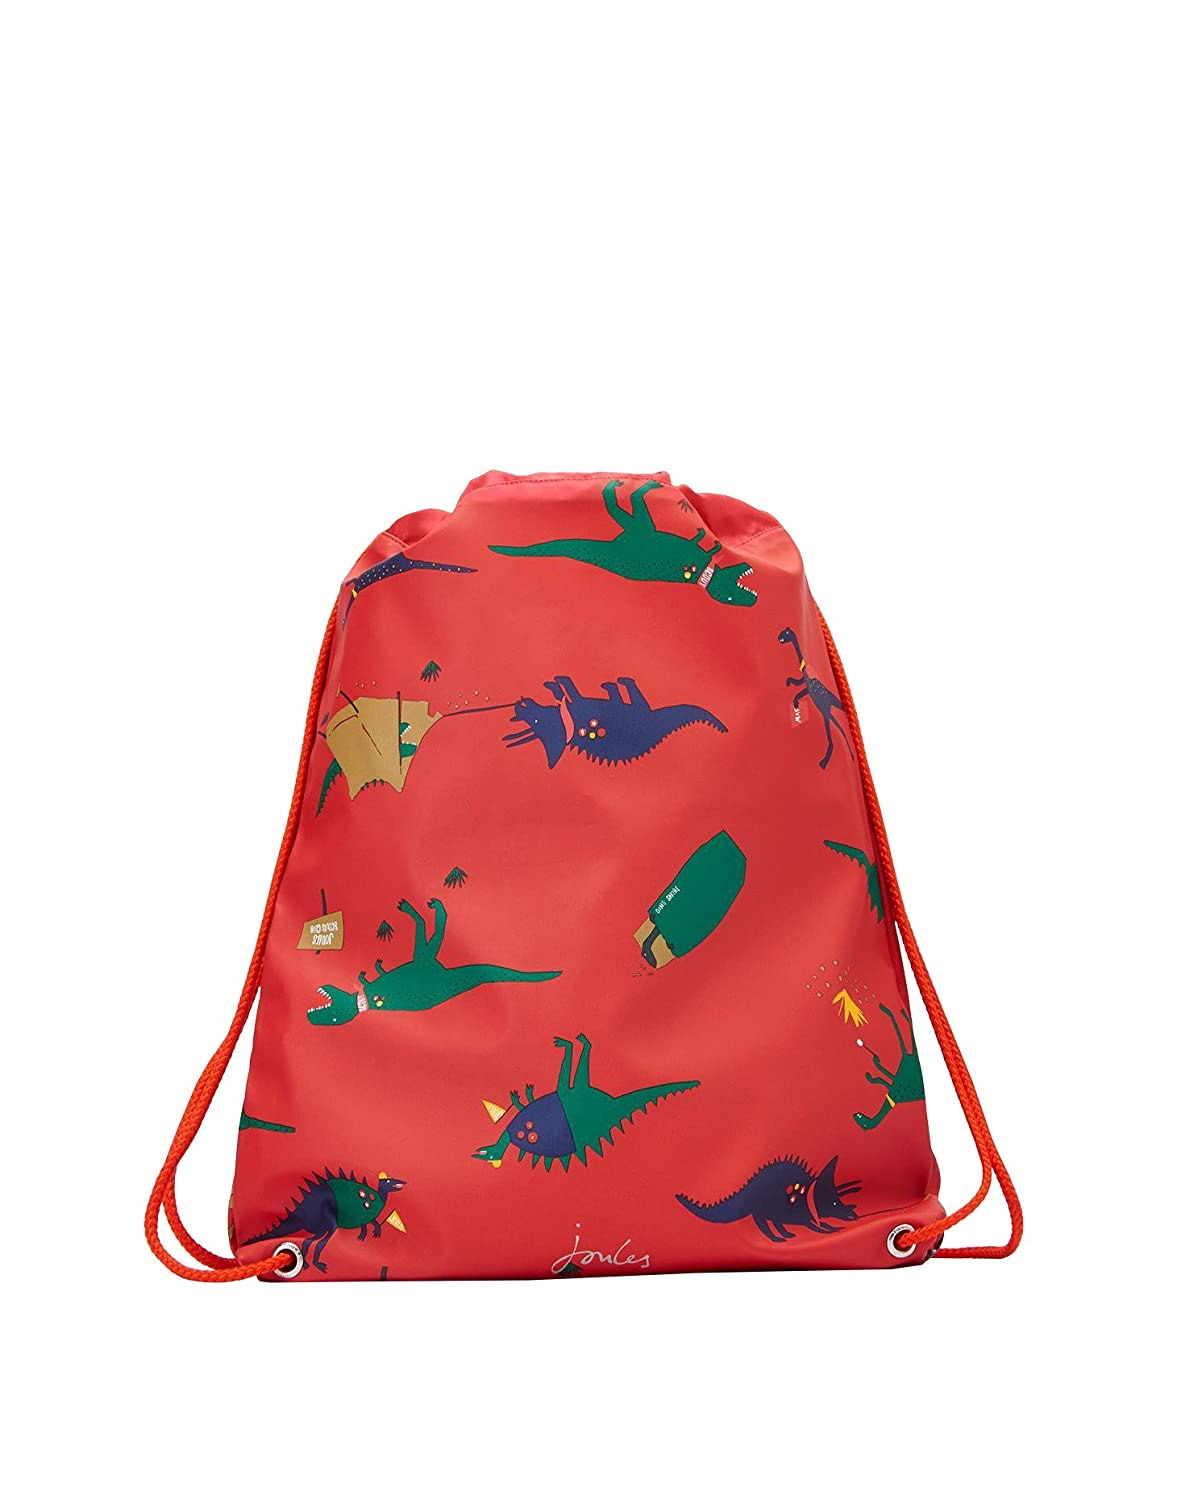 Joules Rubber Drawstring Bag - Red Dinosaur